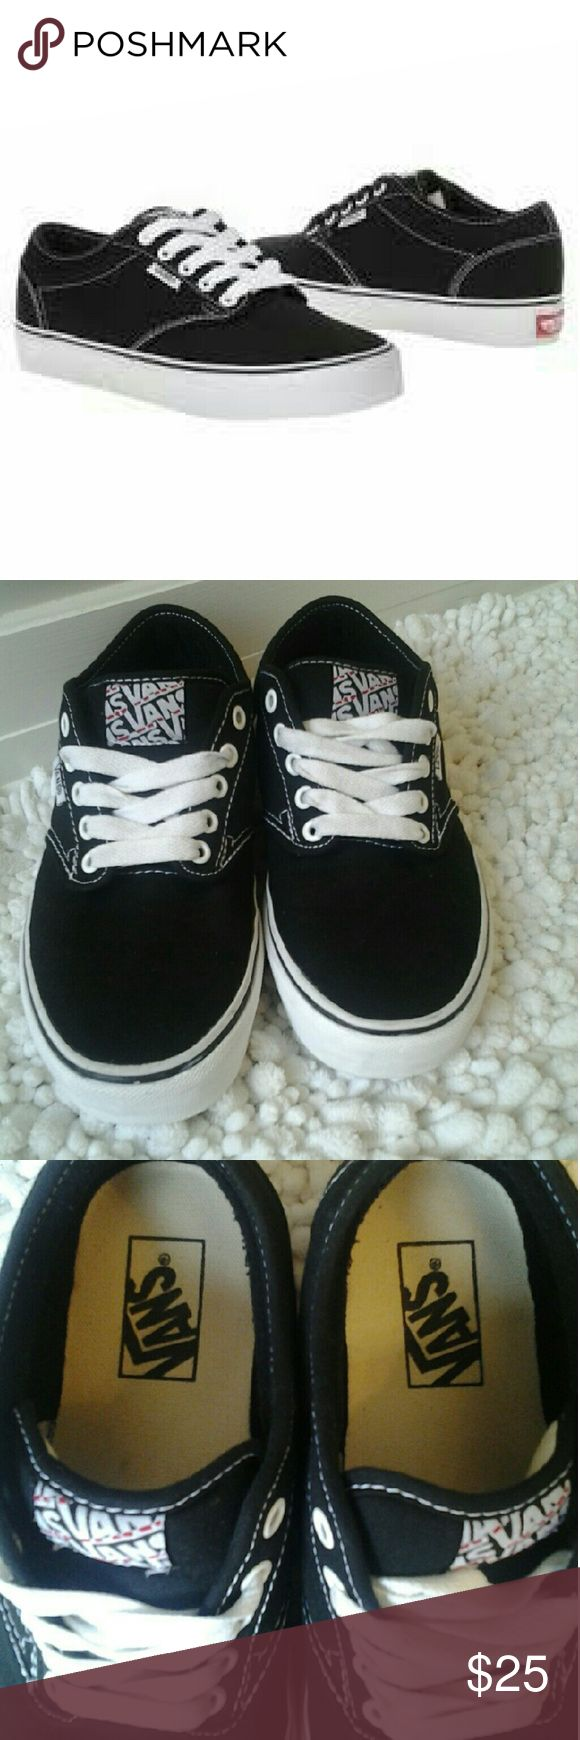 Vans Authentic Skate Shoes Vans Authentic Black & White  skate shoes (Women) excellent condition,  no fading ... will go great in your casual shoes collection... Vans Shoes Sneakers